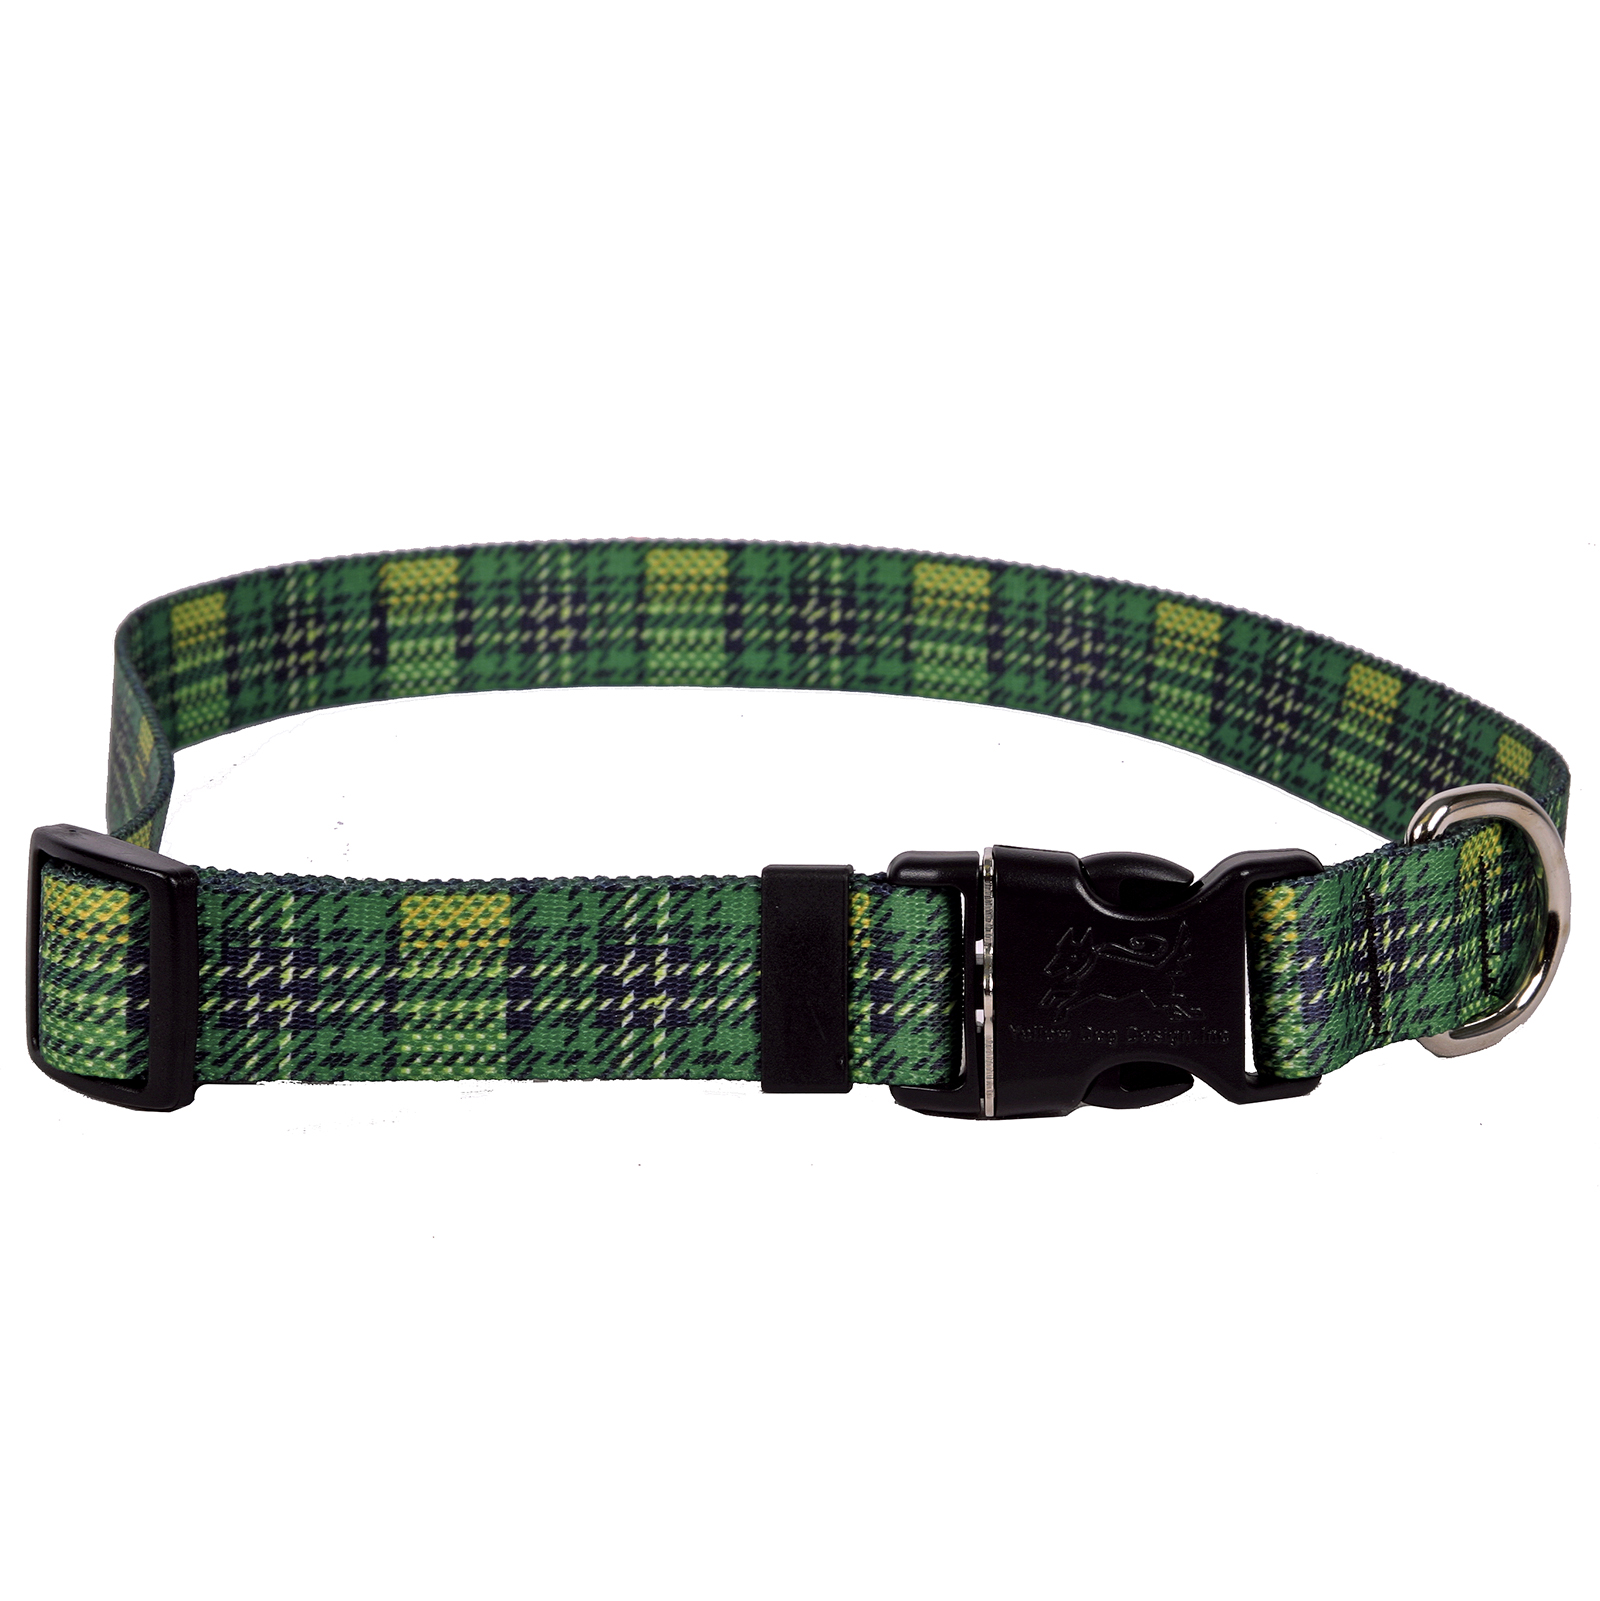 Highland Plaid Green and Gold Standard Collar